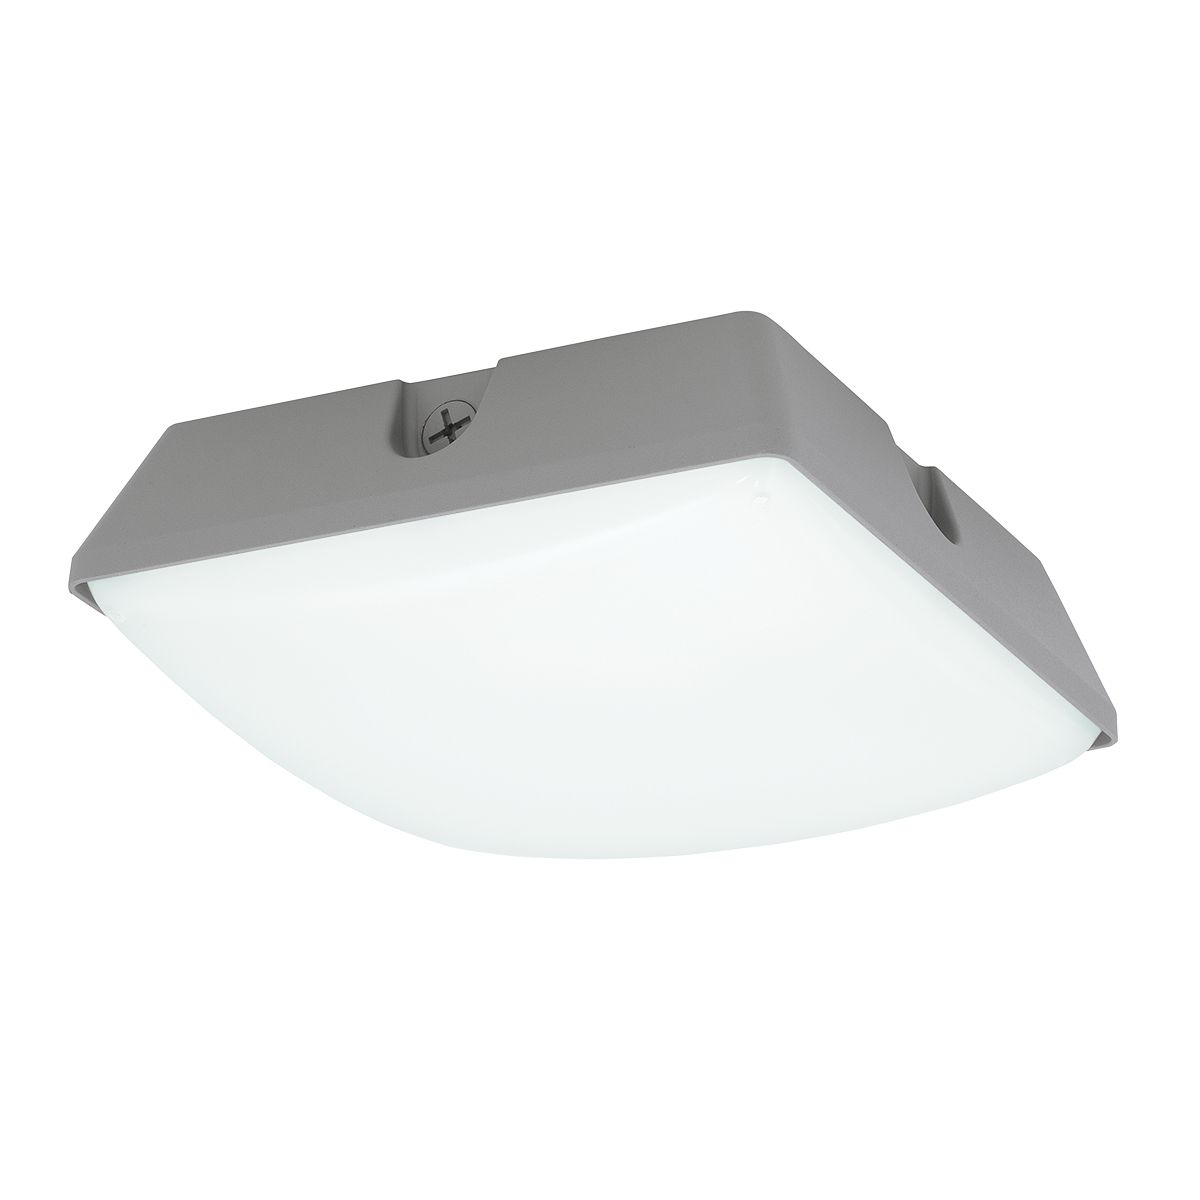 Lsq lumasquare series ceiling canopy garage commercial 3 more items in gallery lsq lumasquare series by hubbell outdoor lighting aloadofball Image collections